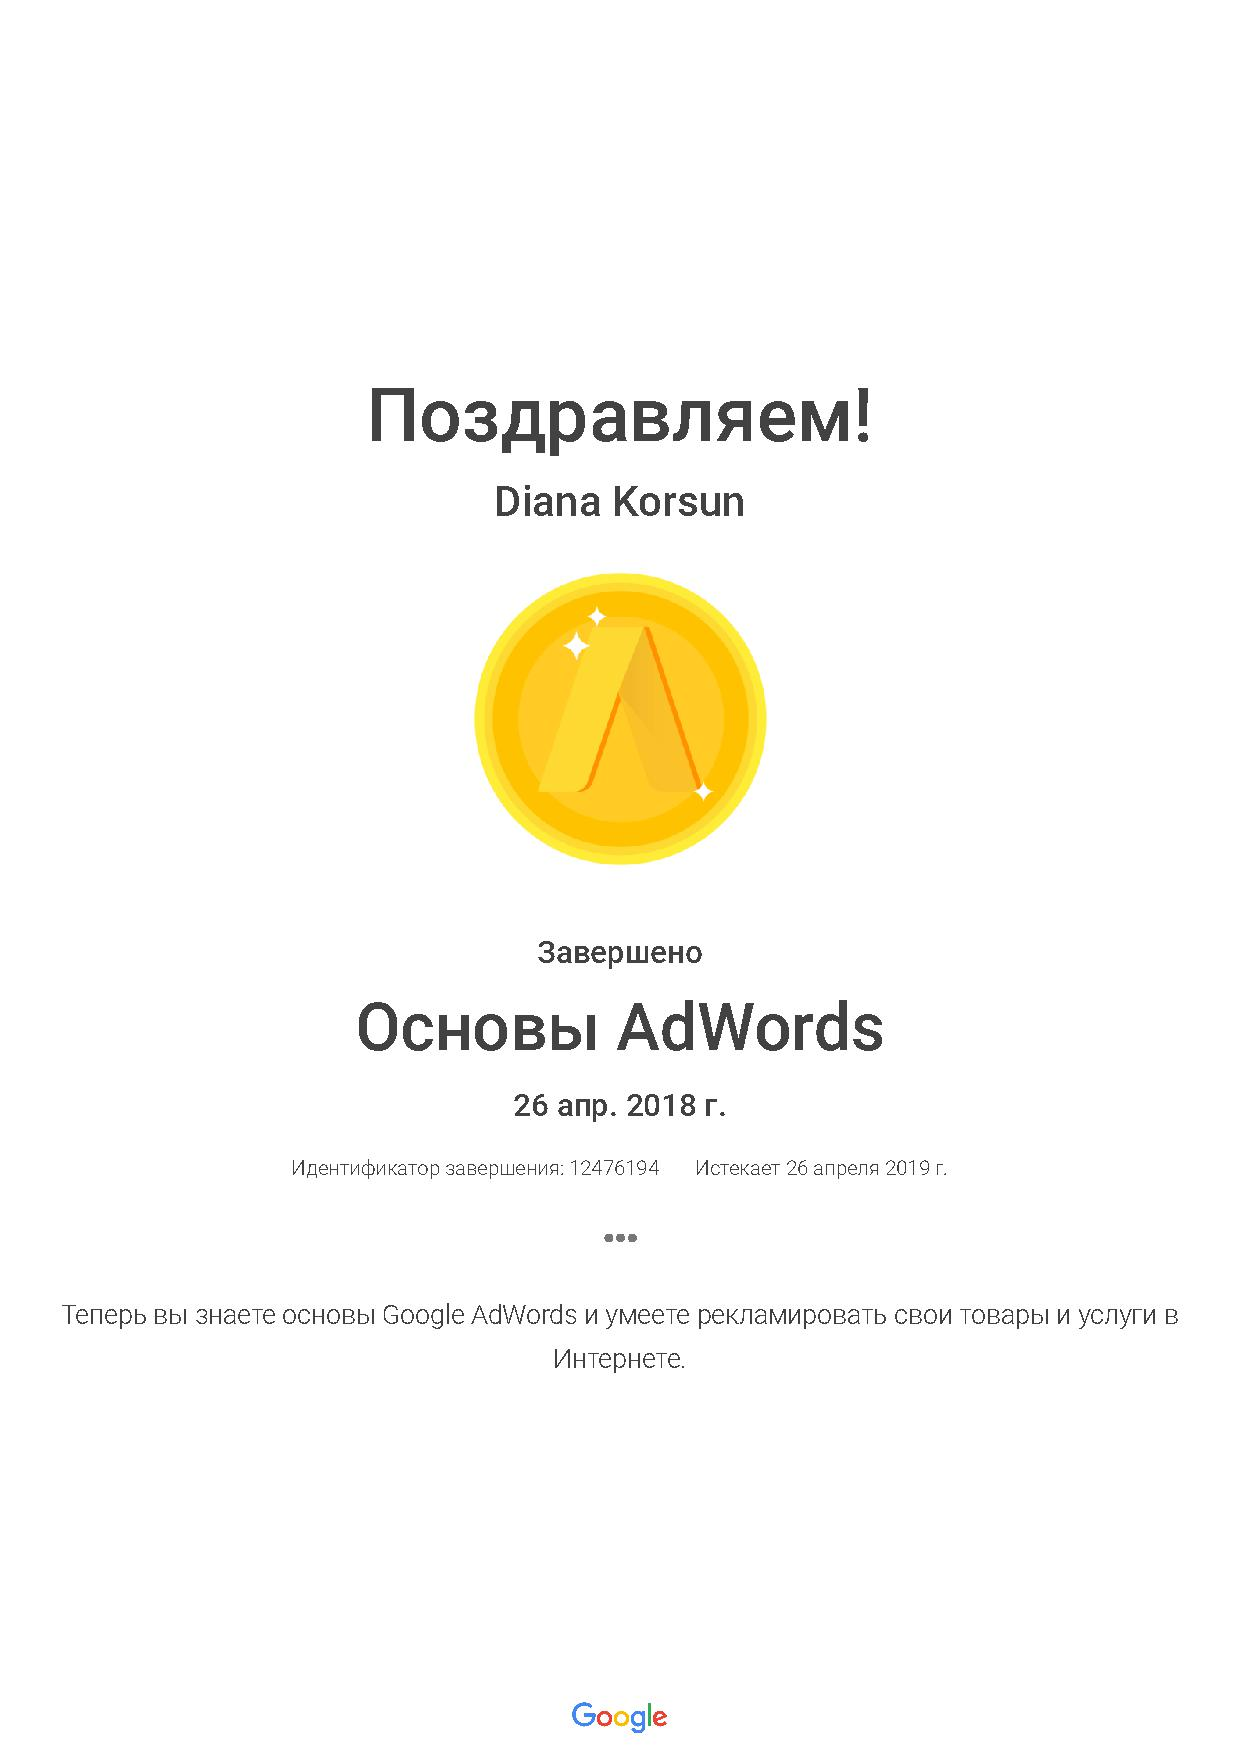 abbi — Google AdWords